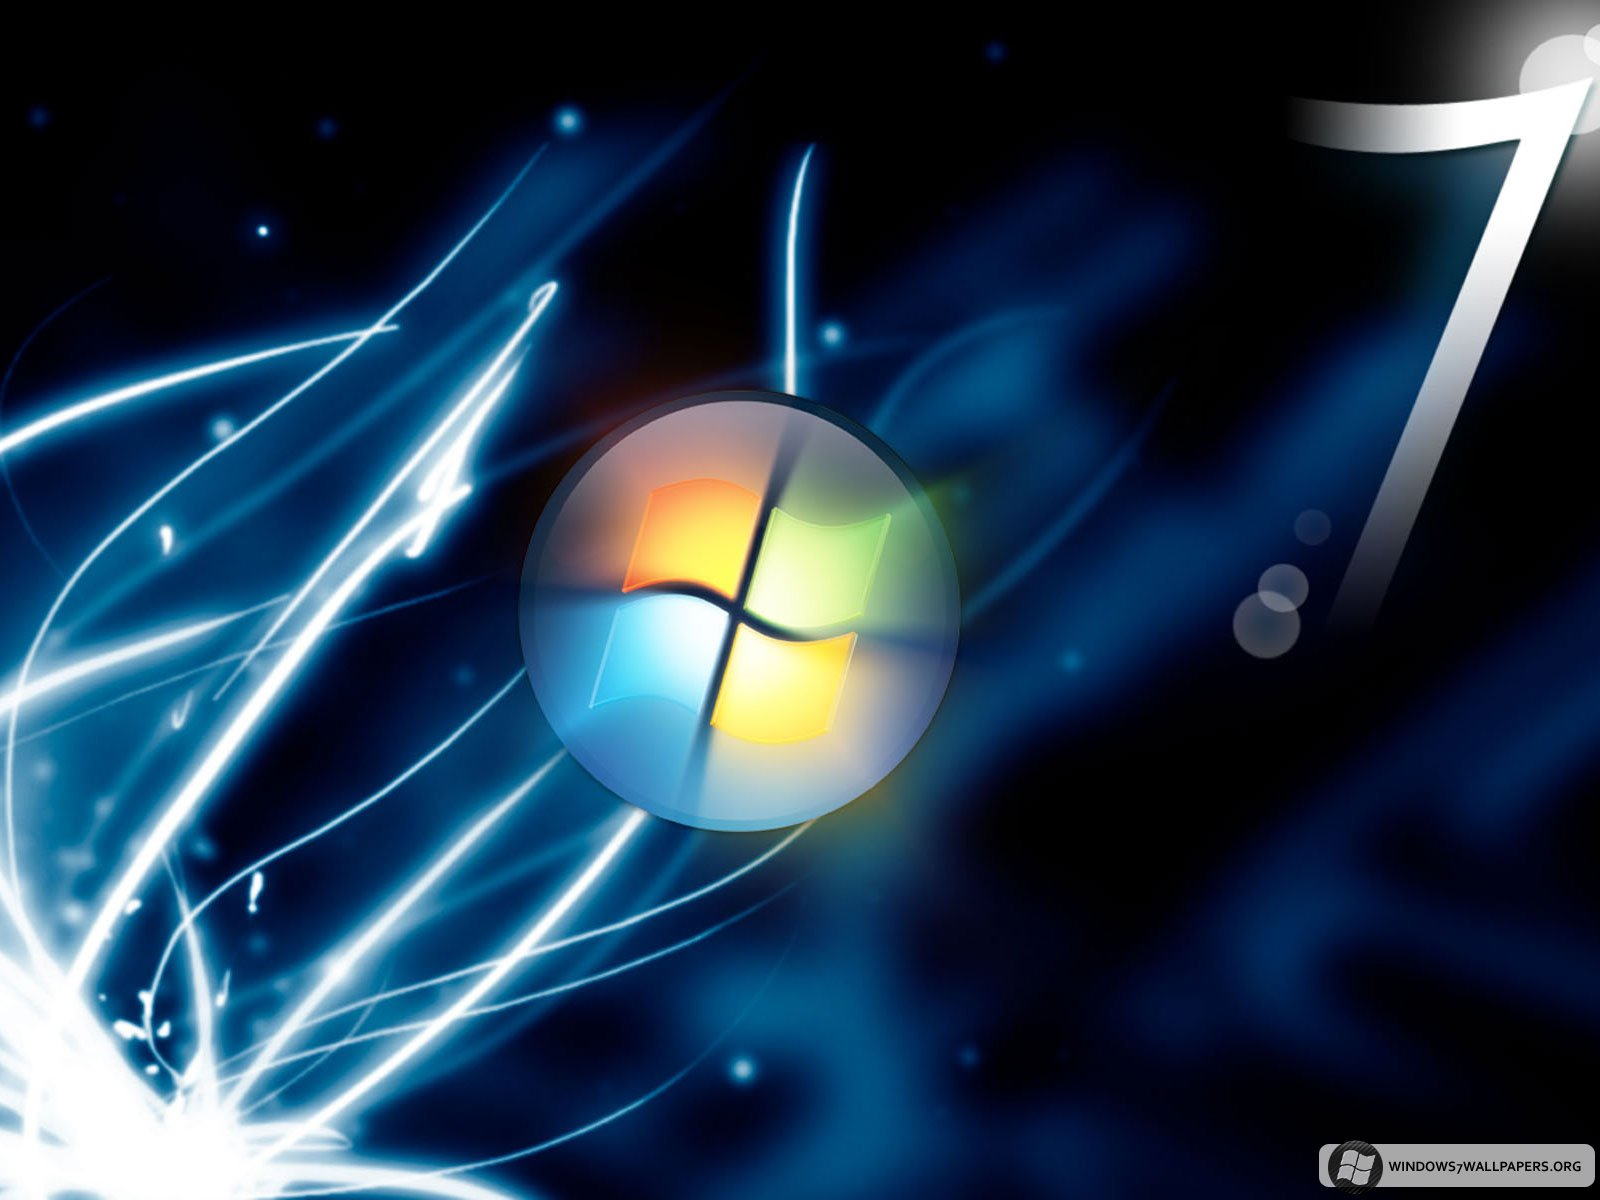 windows 7 logon wallpaper location